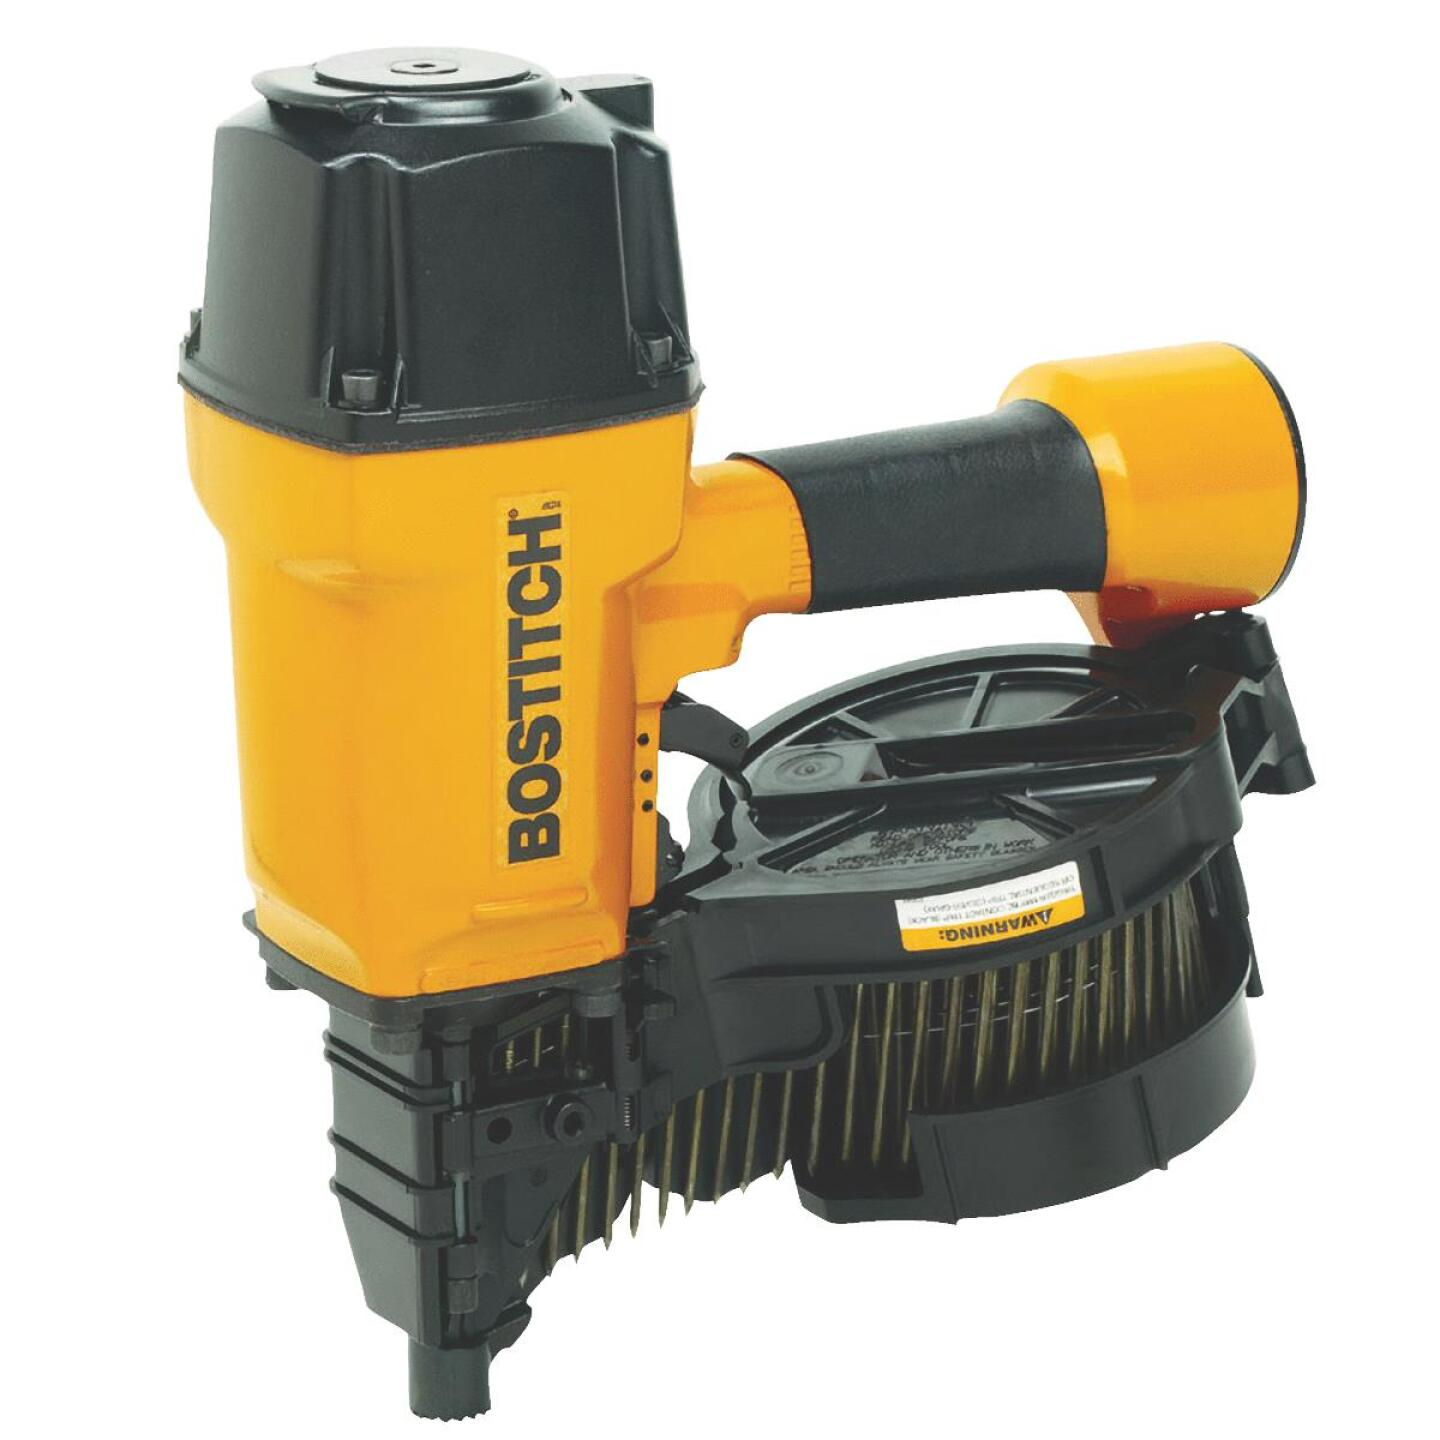 Bostitch 15 Degree 3-1/4 In. Wire Weld Framing Nailer Image 1